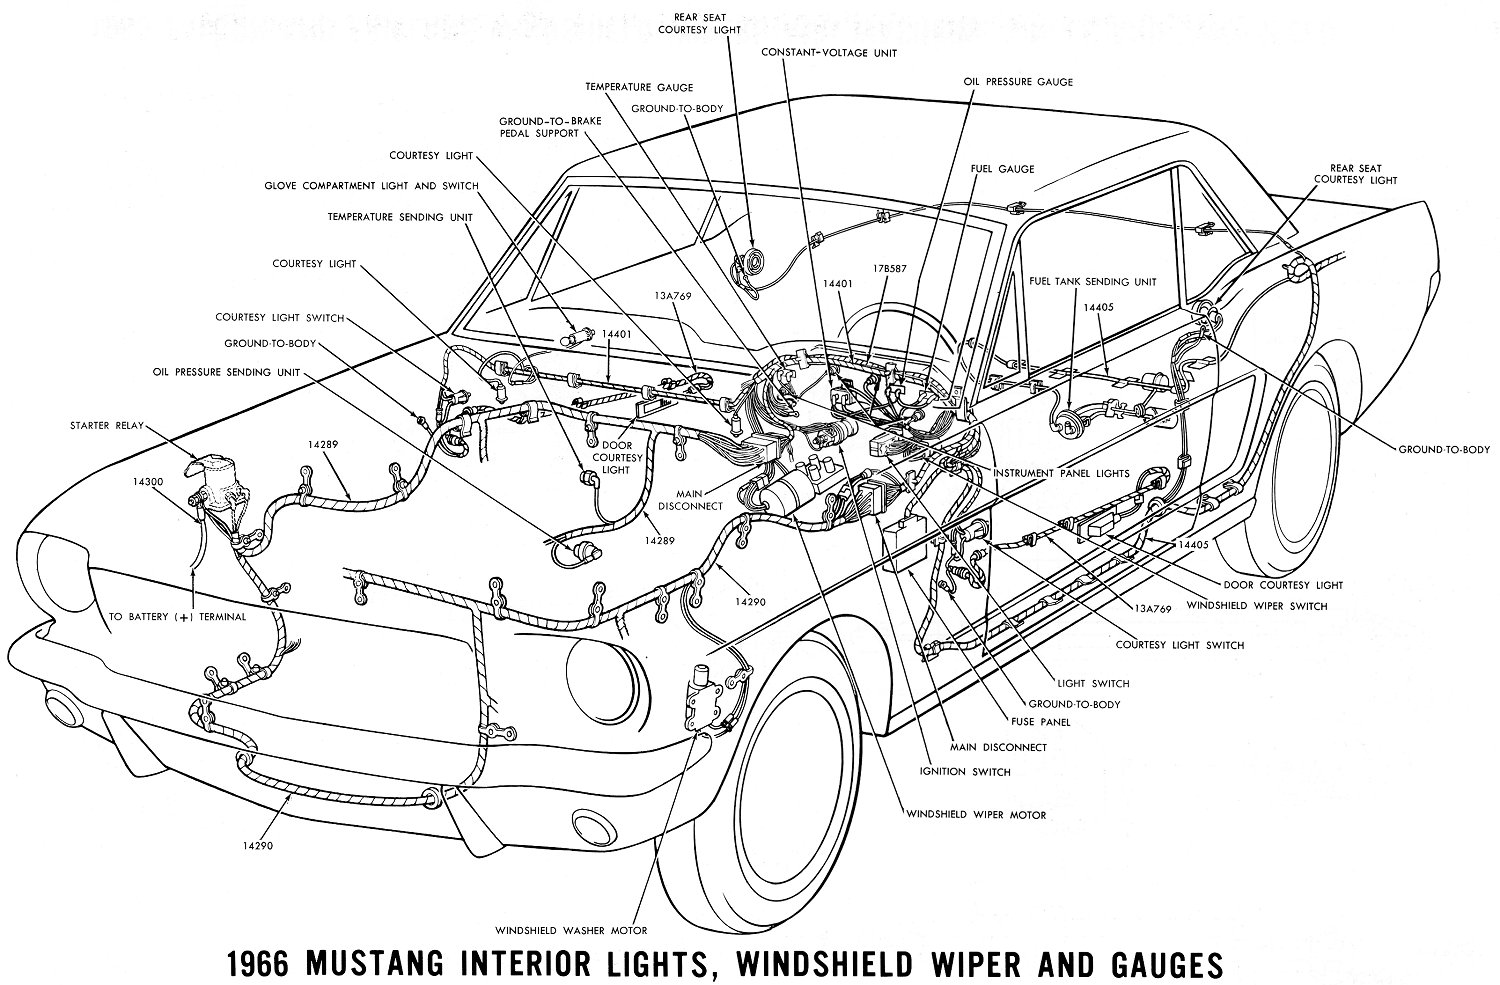 1966 mustang wiring diagrams average joe restoration rh averagejoerestoration com